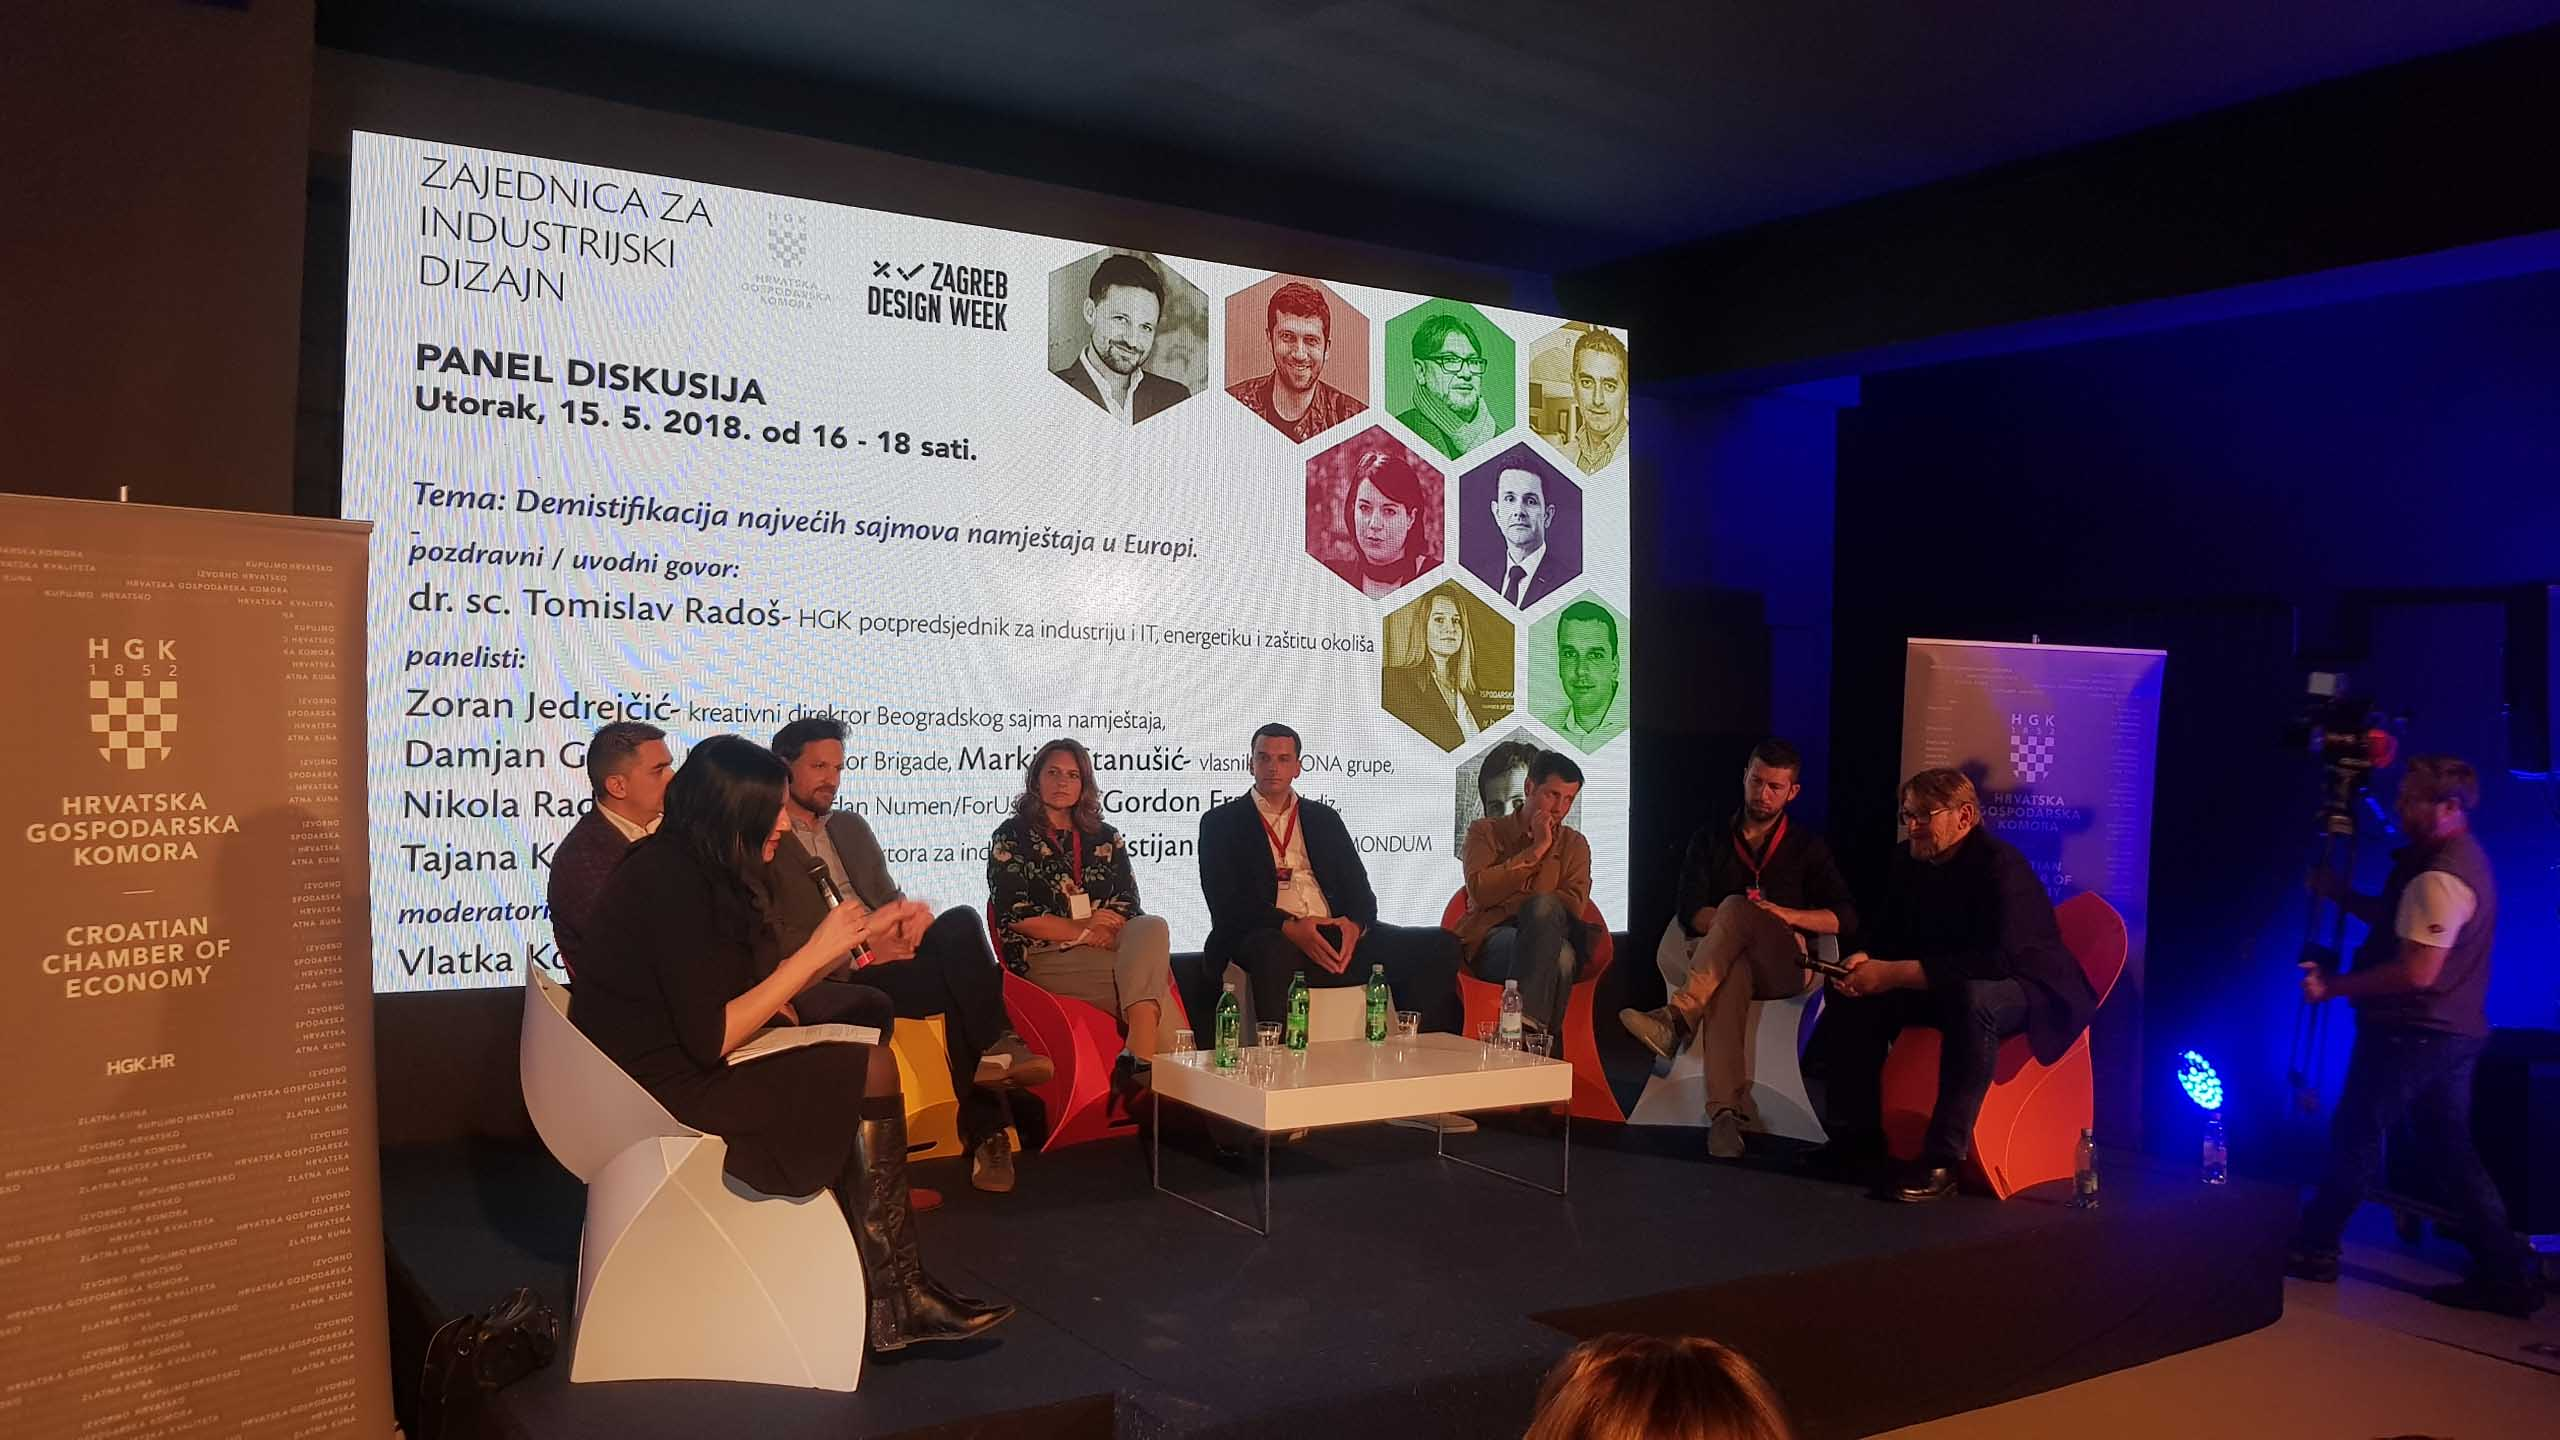 """Panel discussion entitled """"Demystifying Europe's biggest furniture fairs"""" at Zagreb Design Week"""